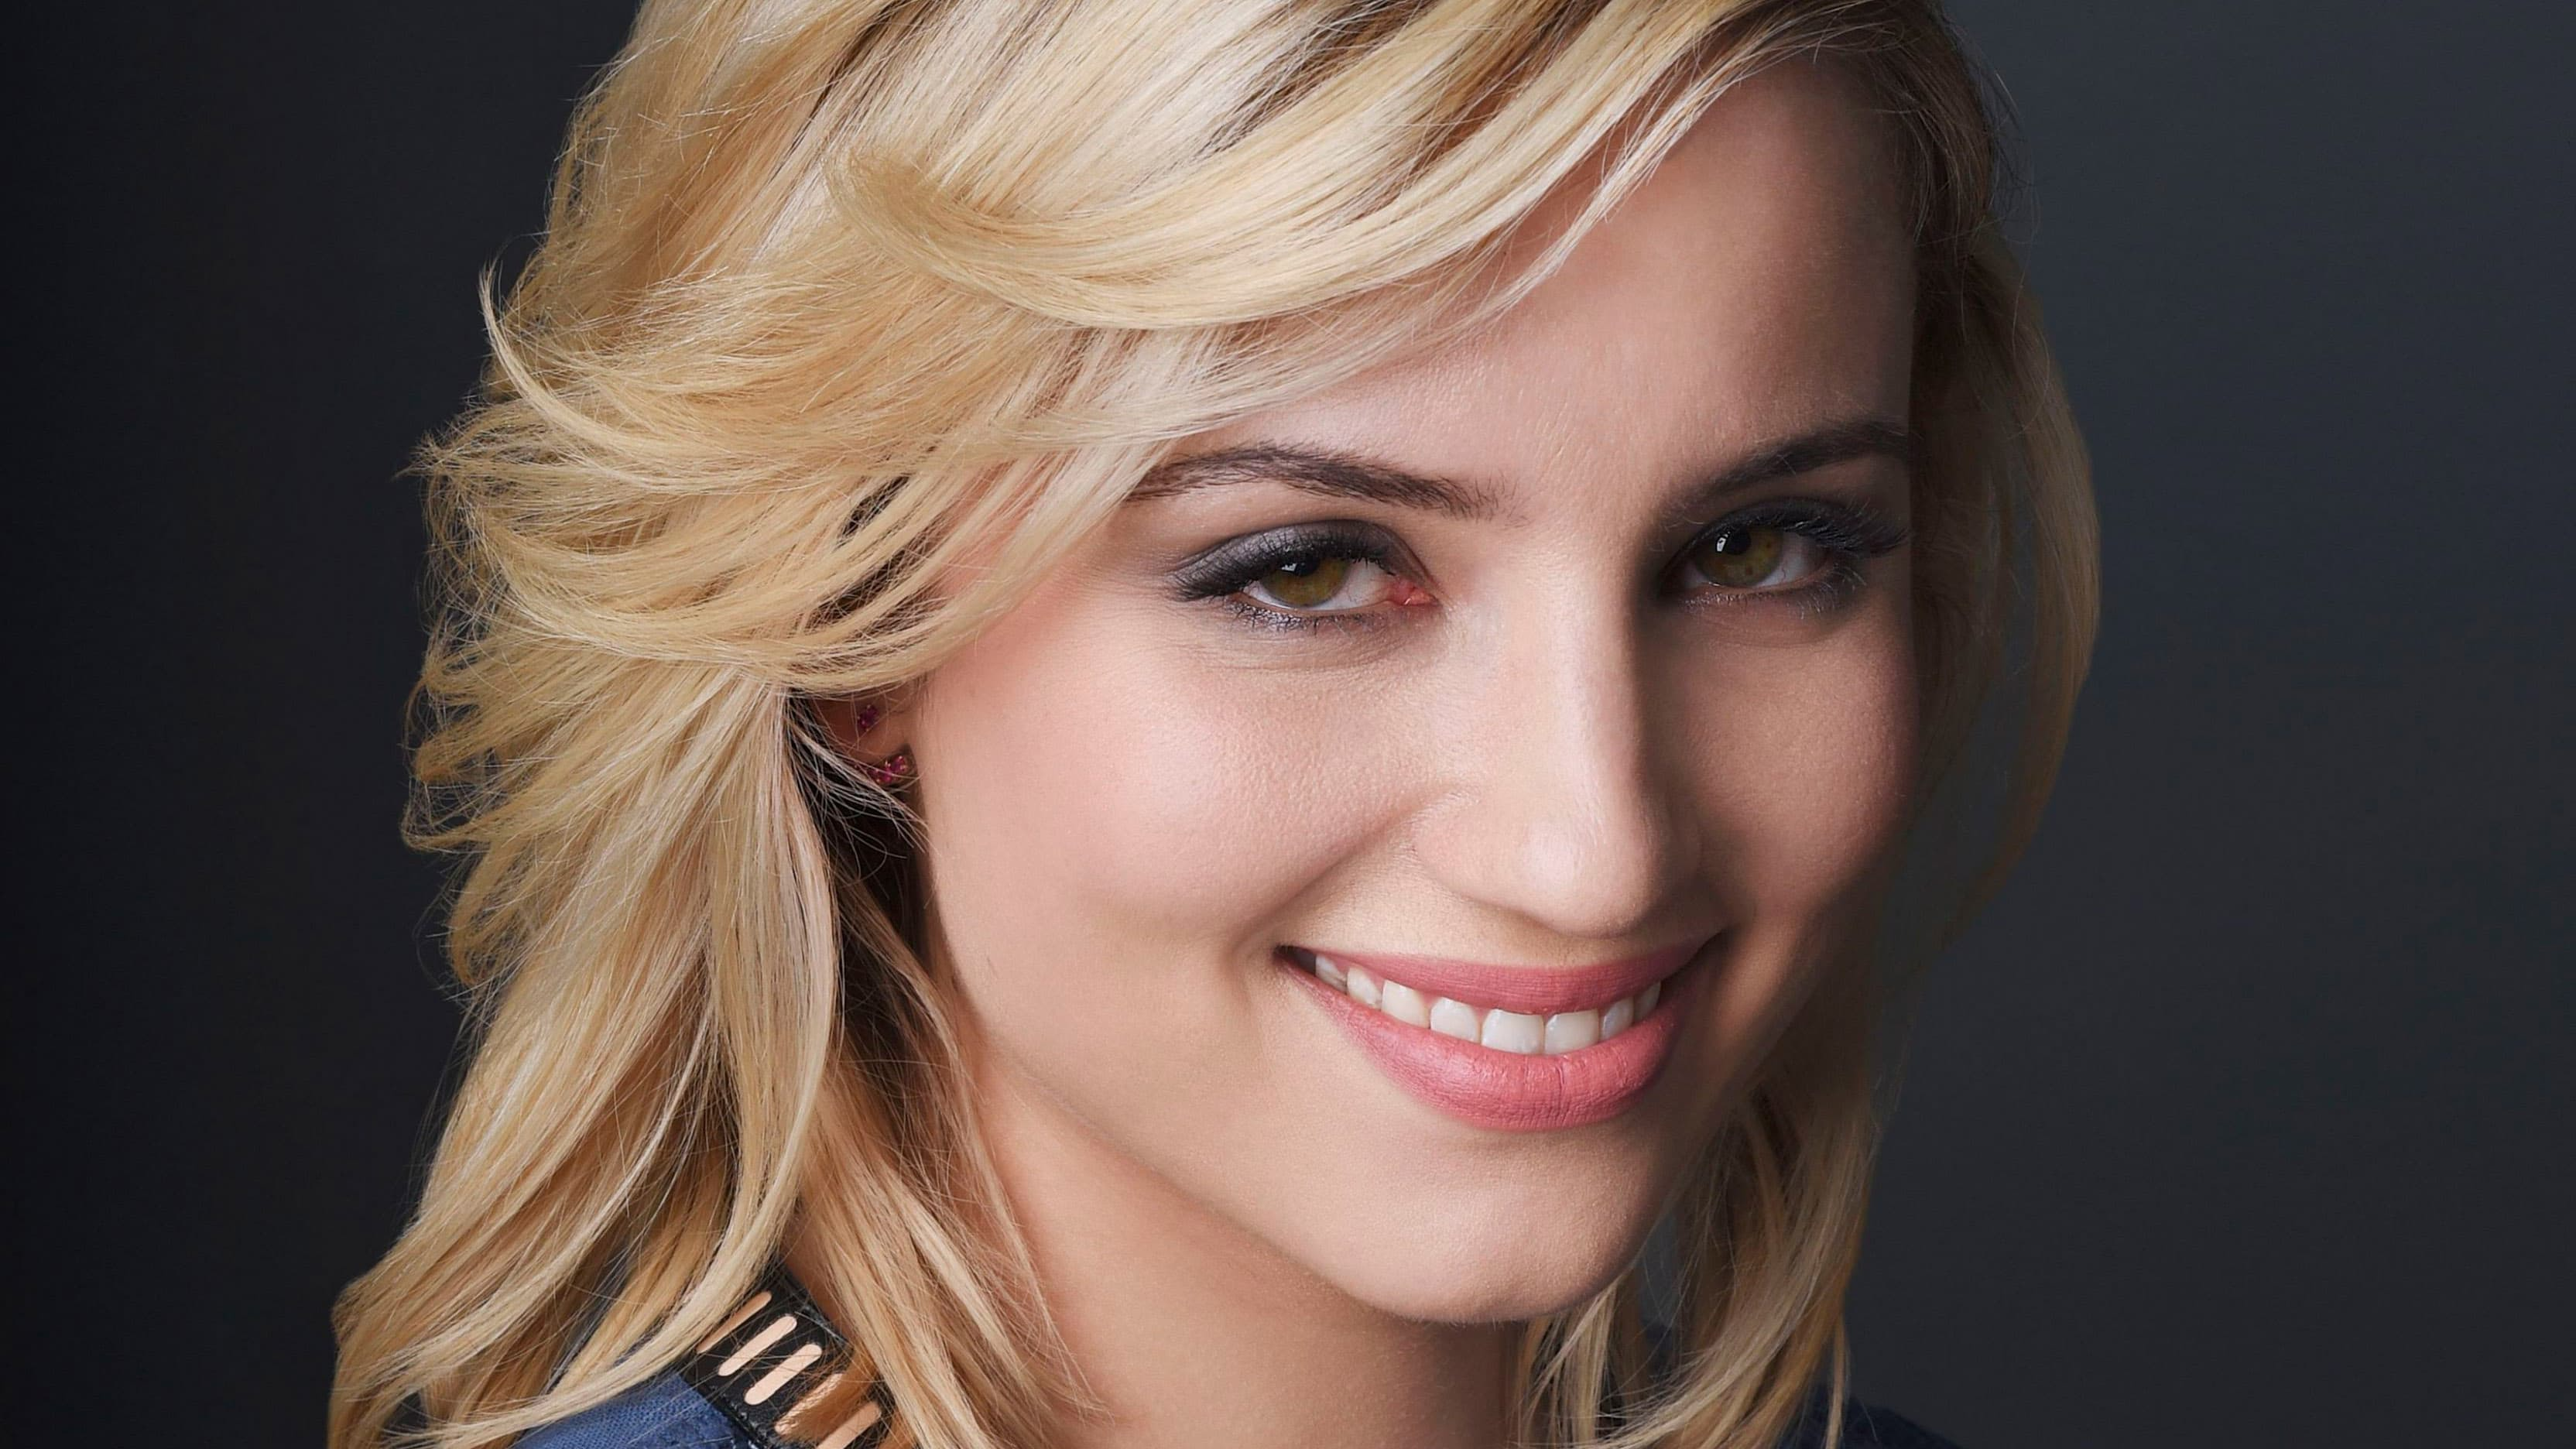 Dianna Agron Wallpapers Images Photos Pictures Backgrounds